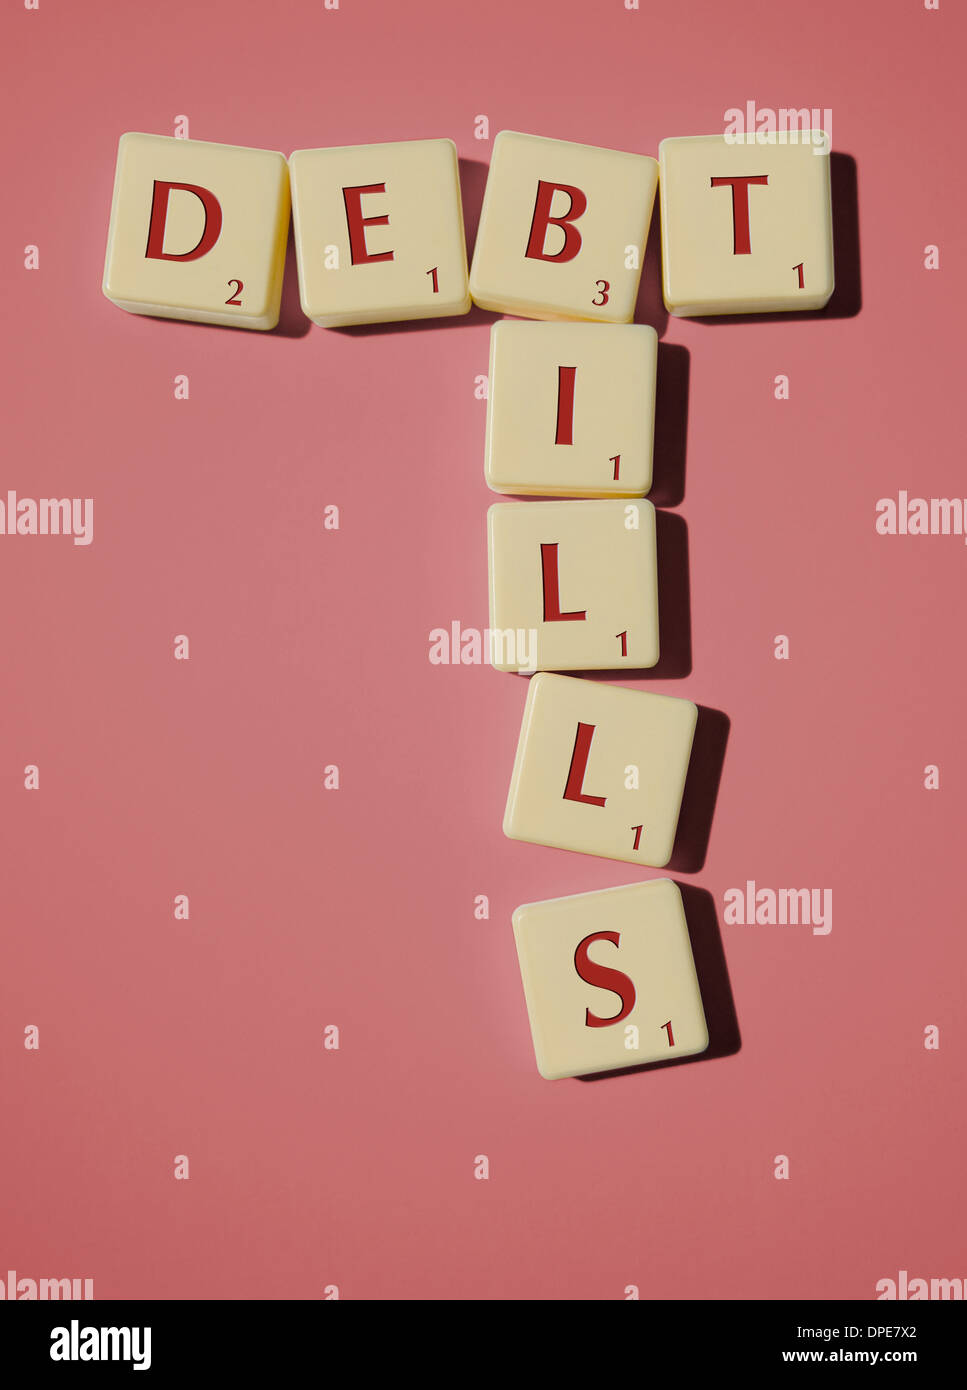 DEBT and BILLS spelled out in Scrabble Pieces on a pink background - Stock Image